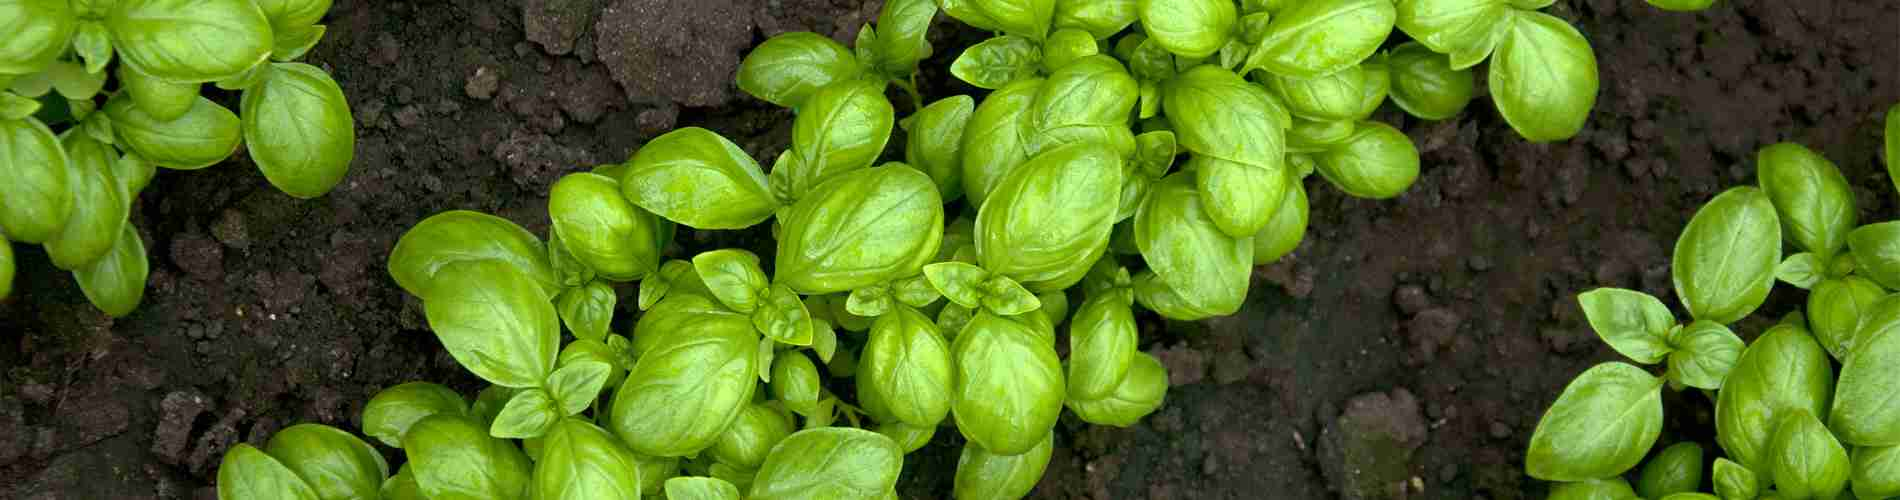 rows of young basil